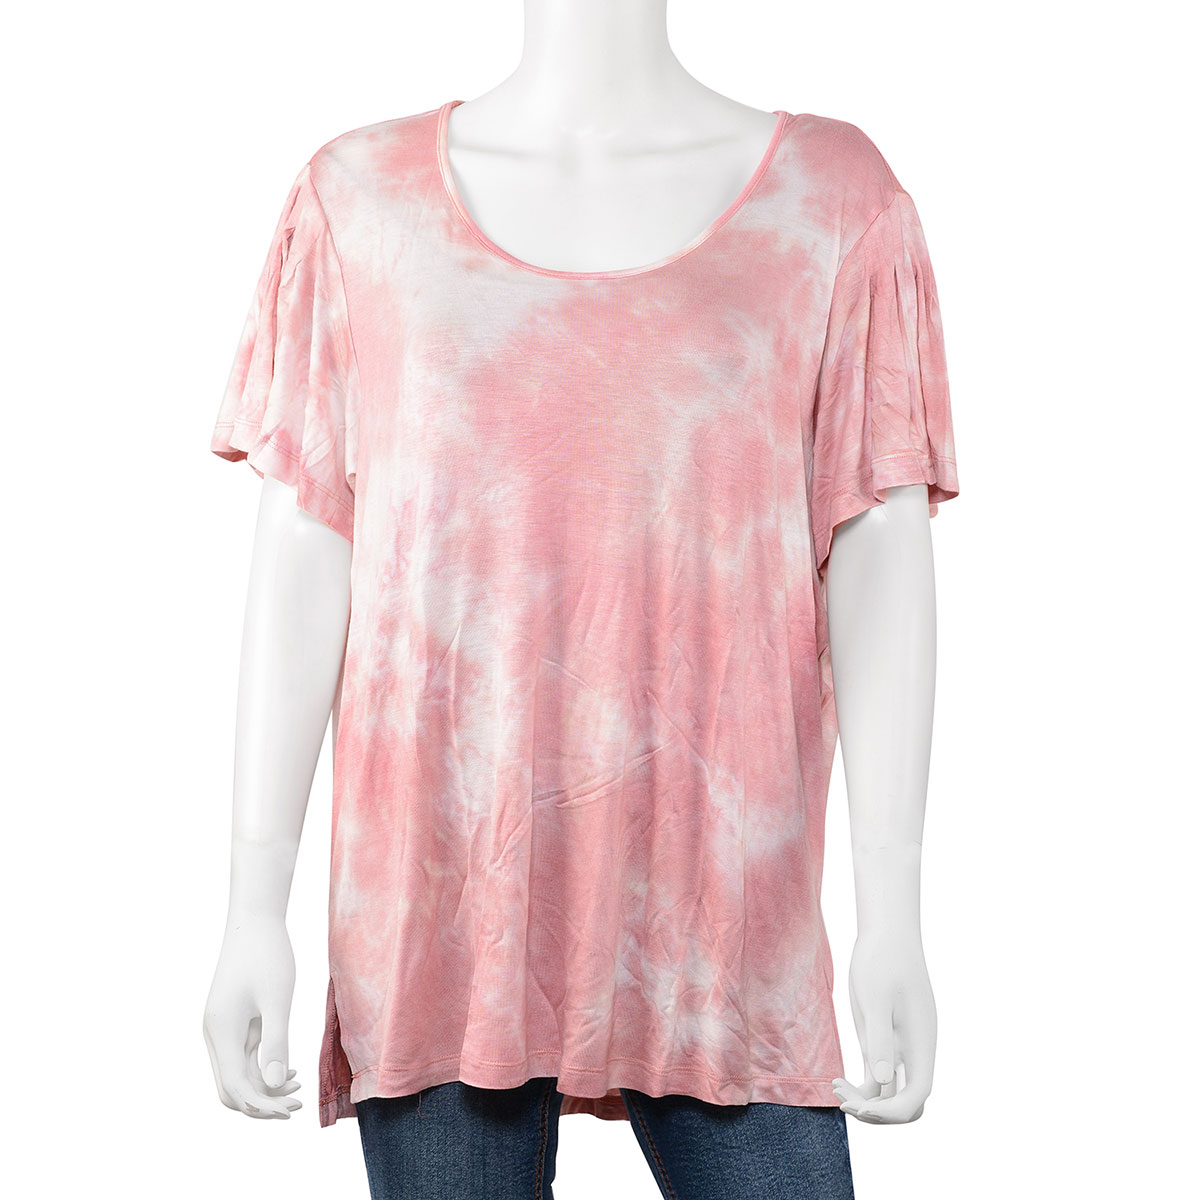 ba1d763bb99 ALKAMY Pink 96% Rayon and 4% Spandex Tie Dye Short Sleeve Top (XL ...